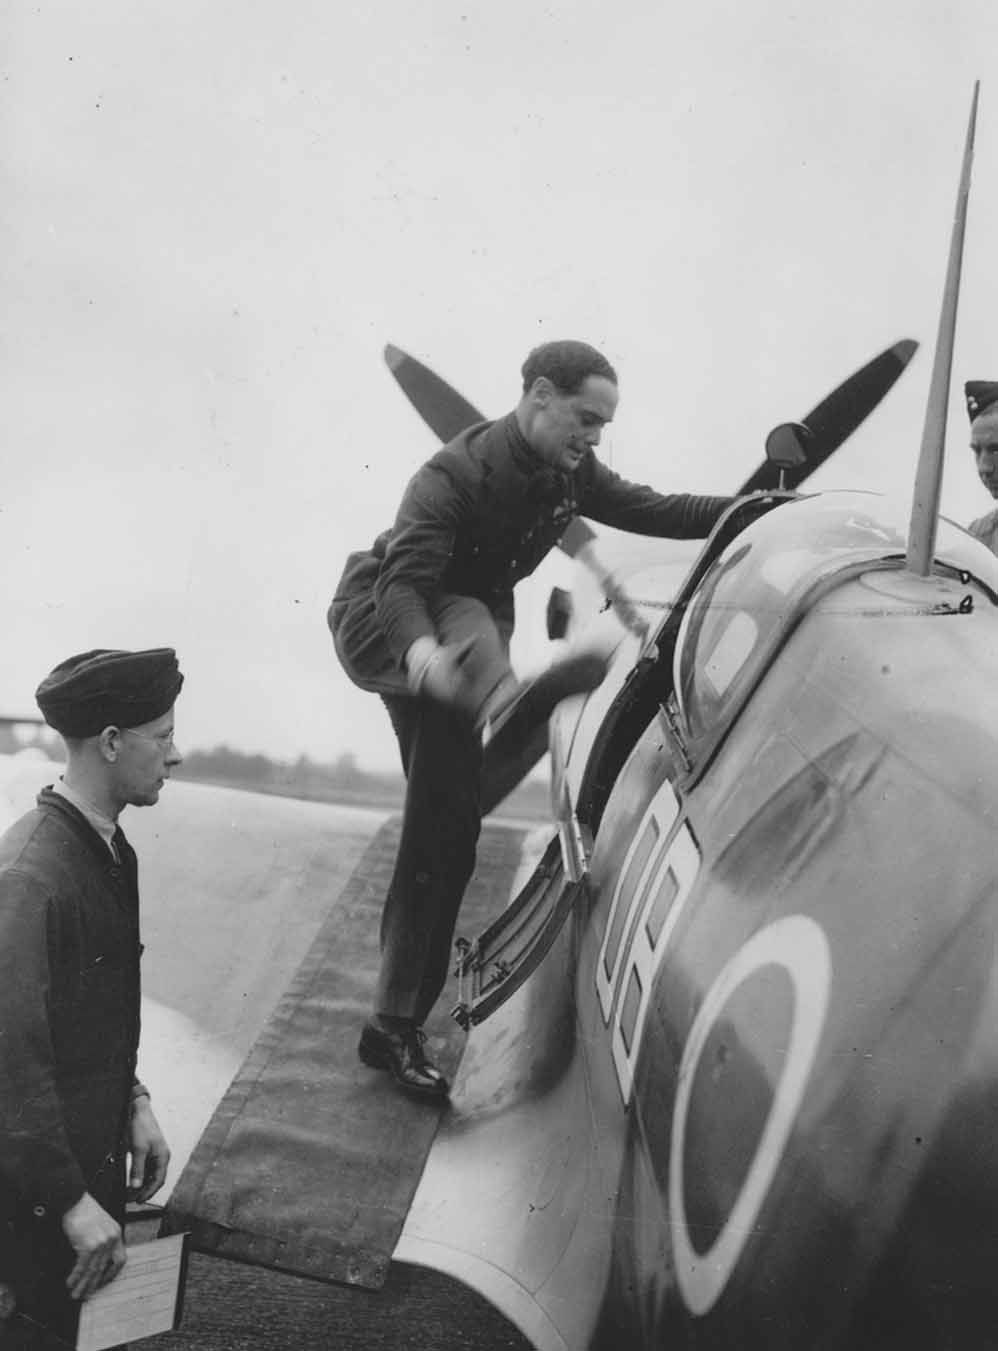 Douglas Bader, who lost his legs in a peace time flying accident,  was determined to prove he could still fly and join the RAF after losing his legs